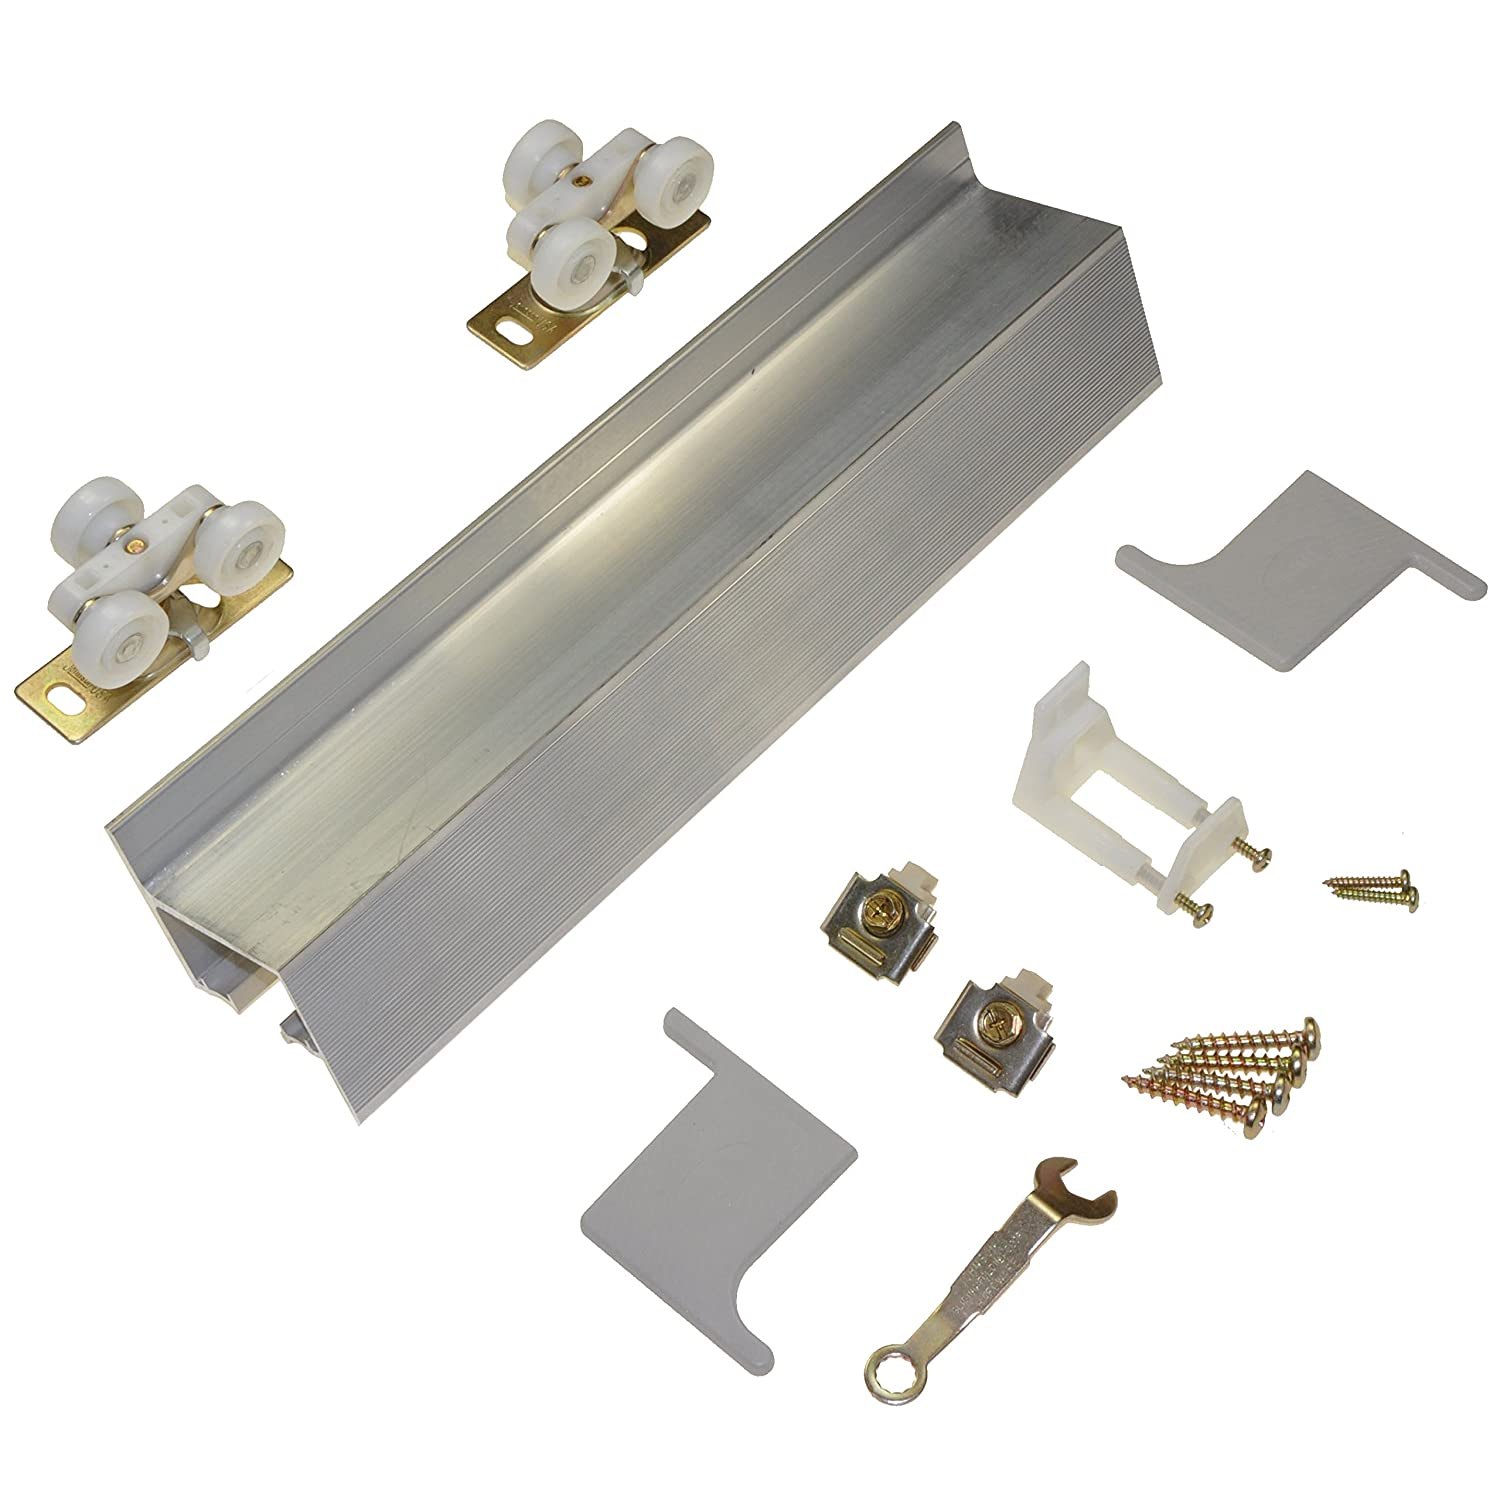 Amazon.com: 2610 Wall Mount Barn Door Type Sliding Door Hardware 72 ...